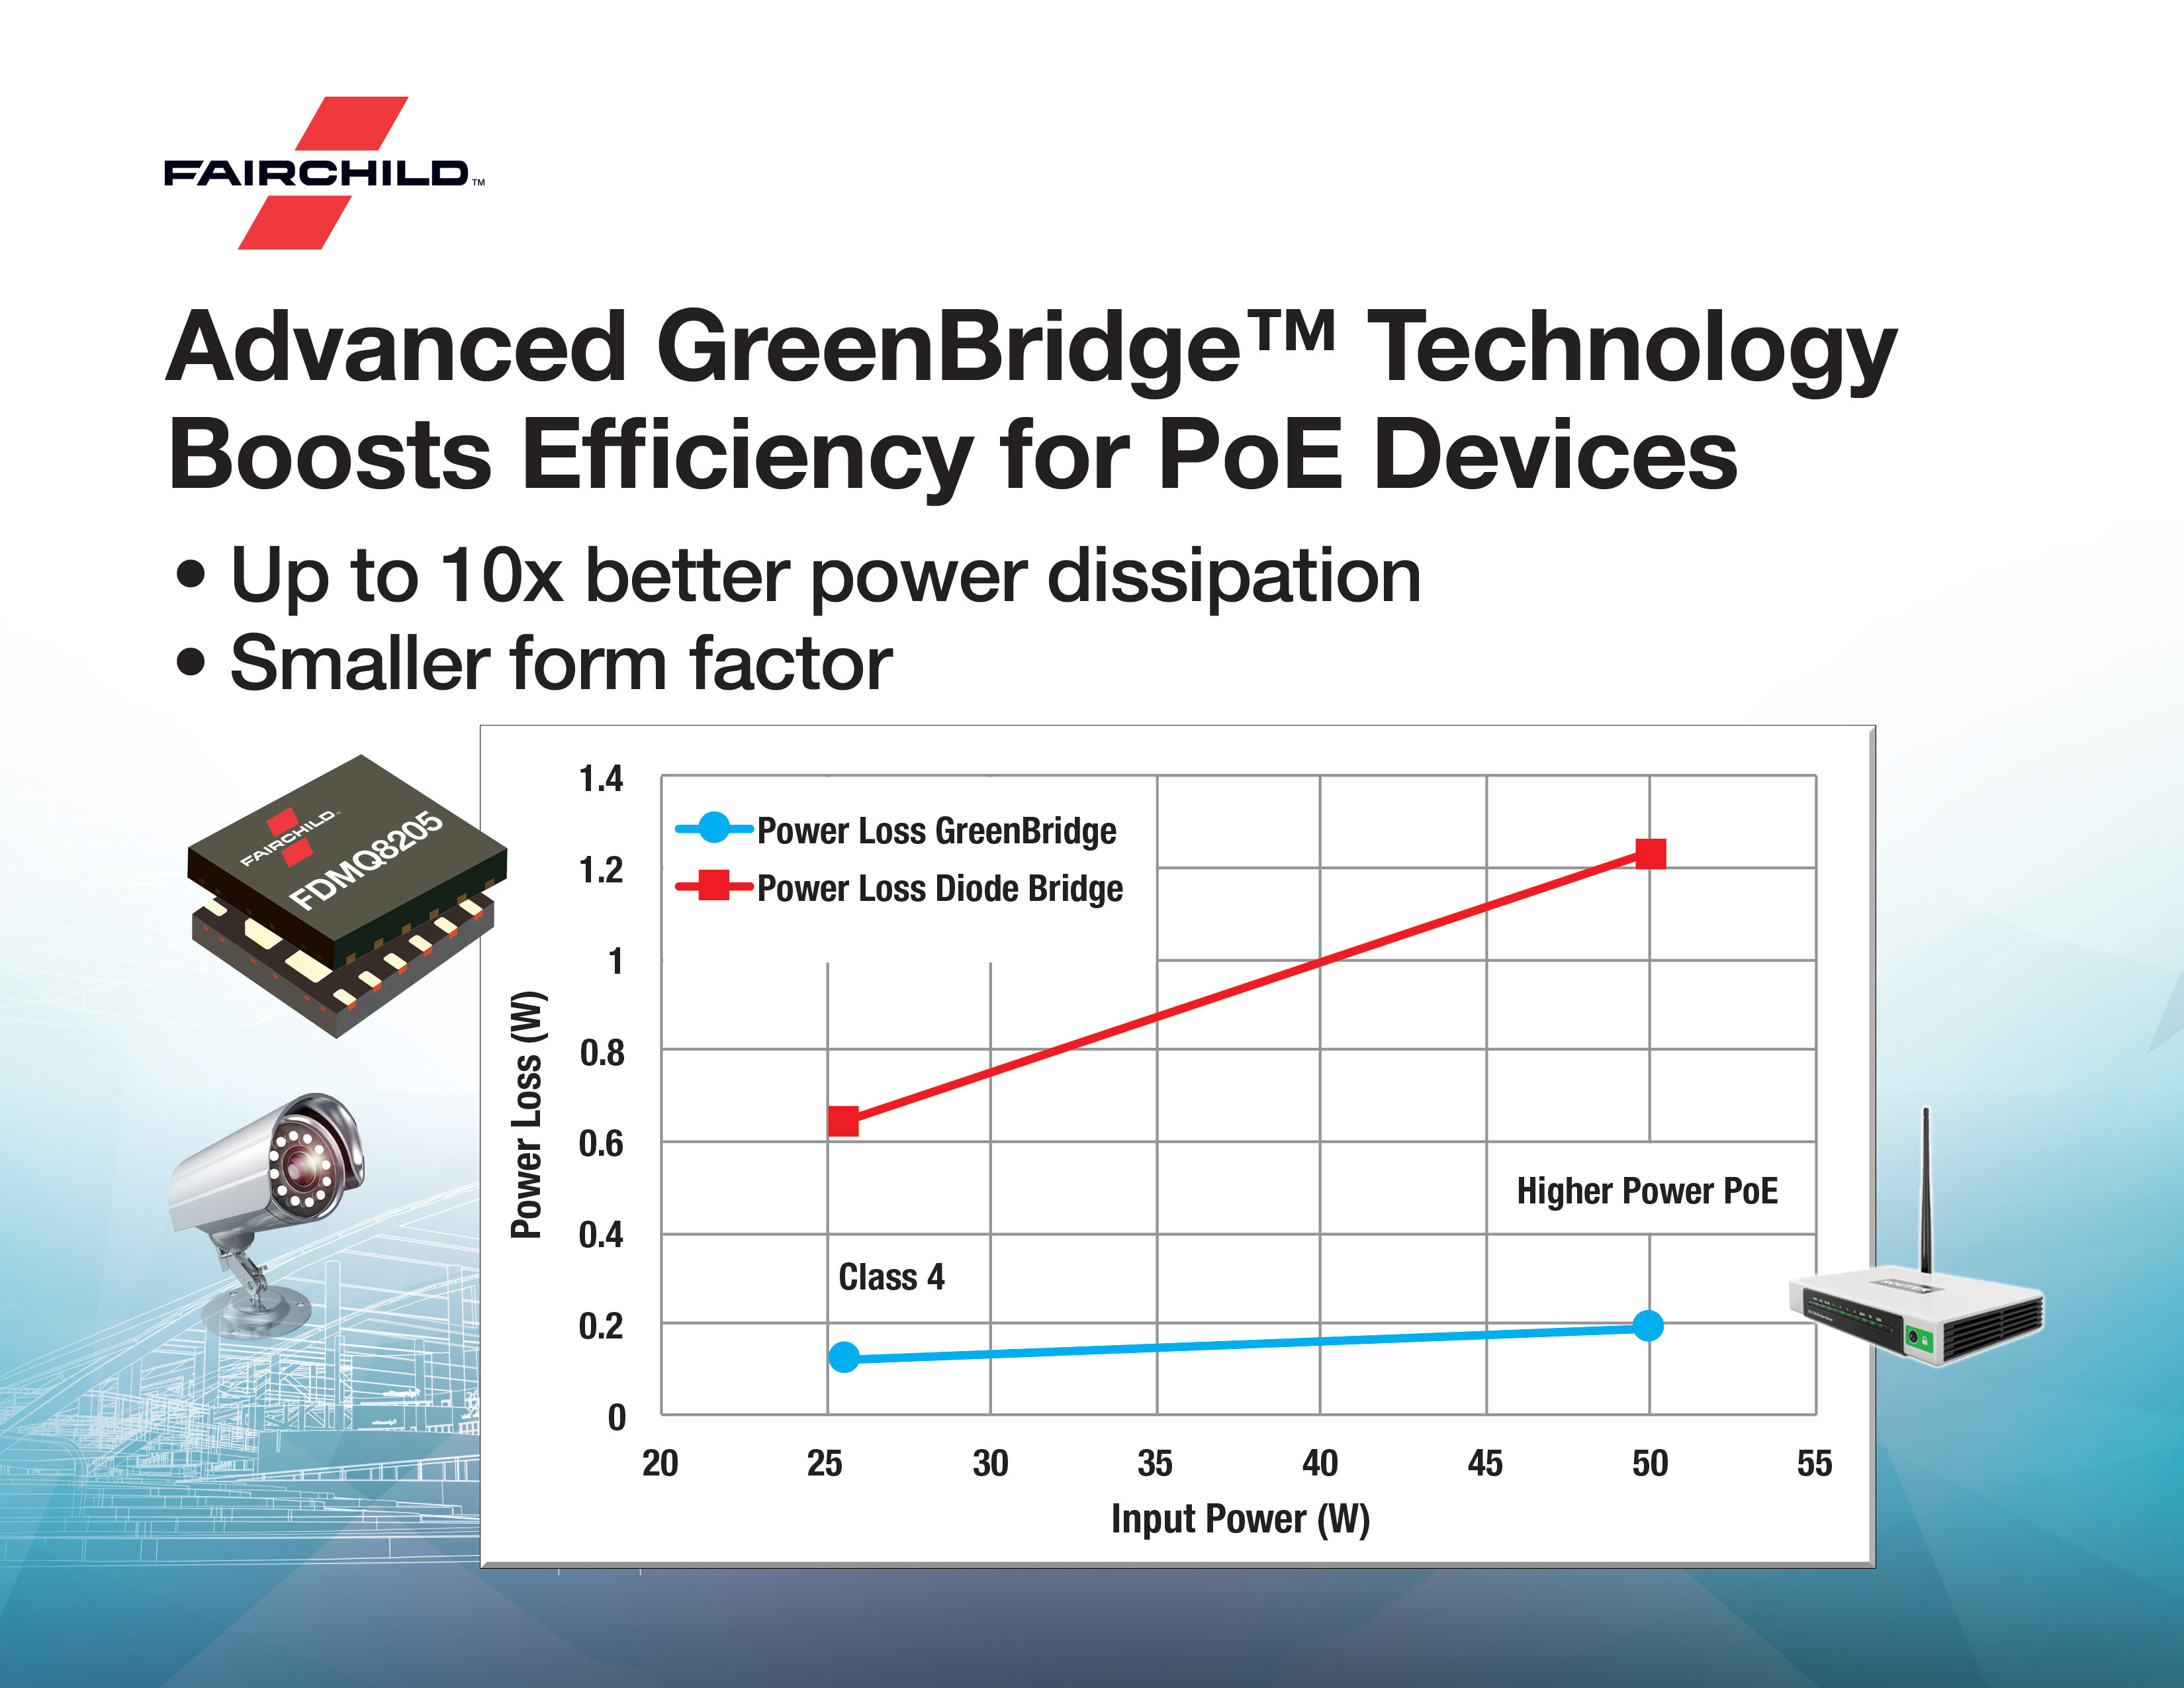 Fairchild's New Active Bridge Solution Delivers Best-in-Cl ... on poe injector diagram, power over ethernet diagram, poe cable diagram, poe lighting, camera diagram, router connection diagram, poe cabling diagram, poe plug diagram, network switch connection diagram, poe power over ethernet color code, ethernet connector diagram, ip ptz wire diagram, poe power diagram, poe switch diagram, poe connector diagram,